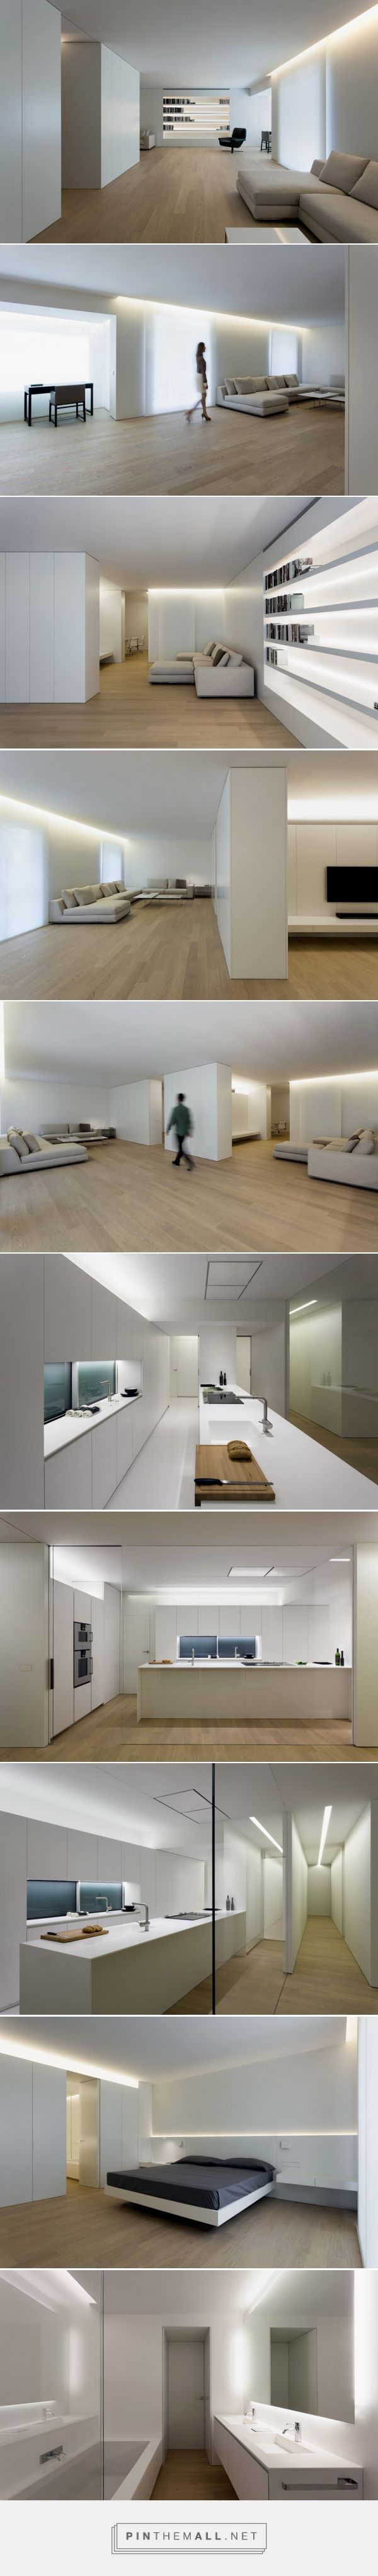 fran silvestre arquitectos renovates antiguo reino house... - a grouped images picture - Pin Them All